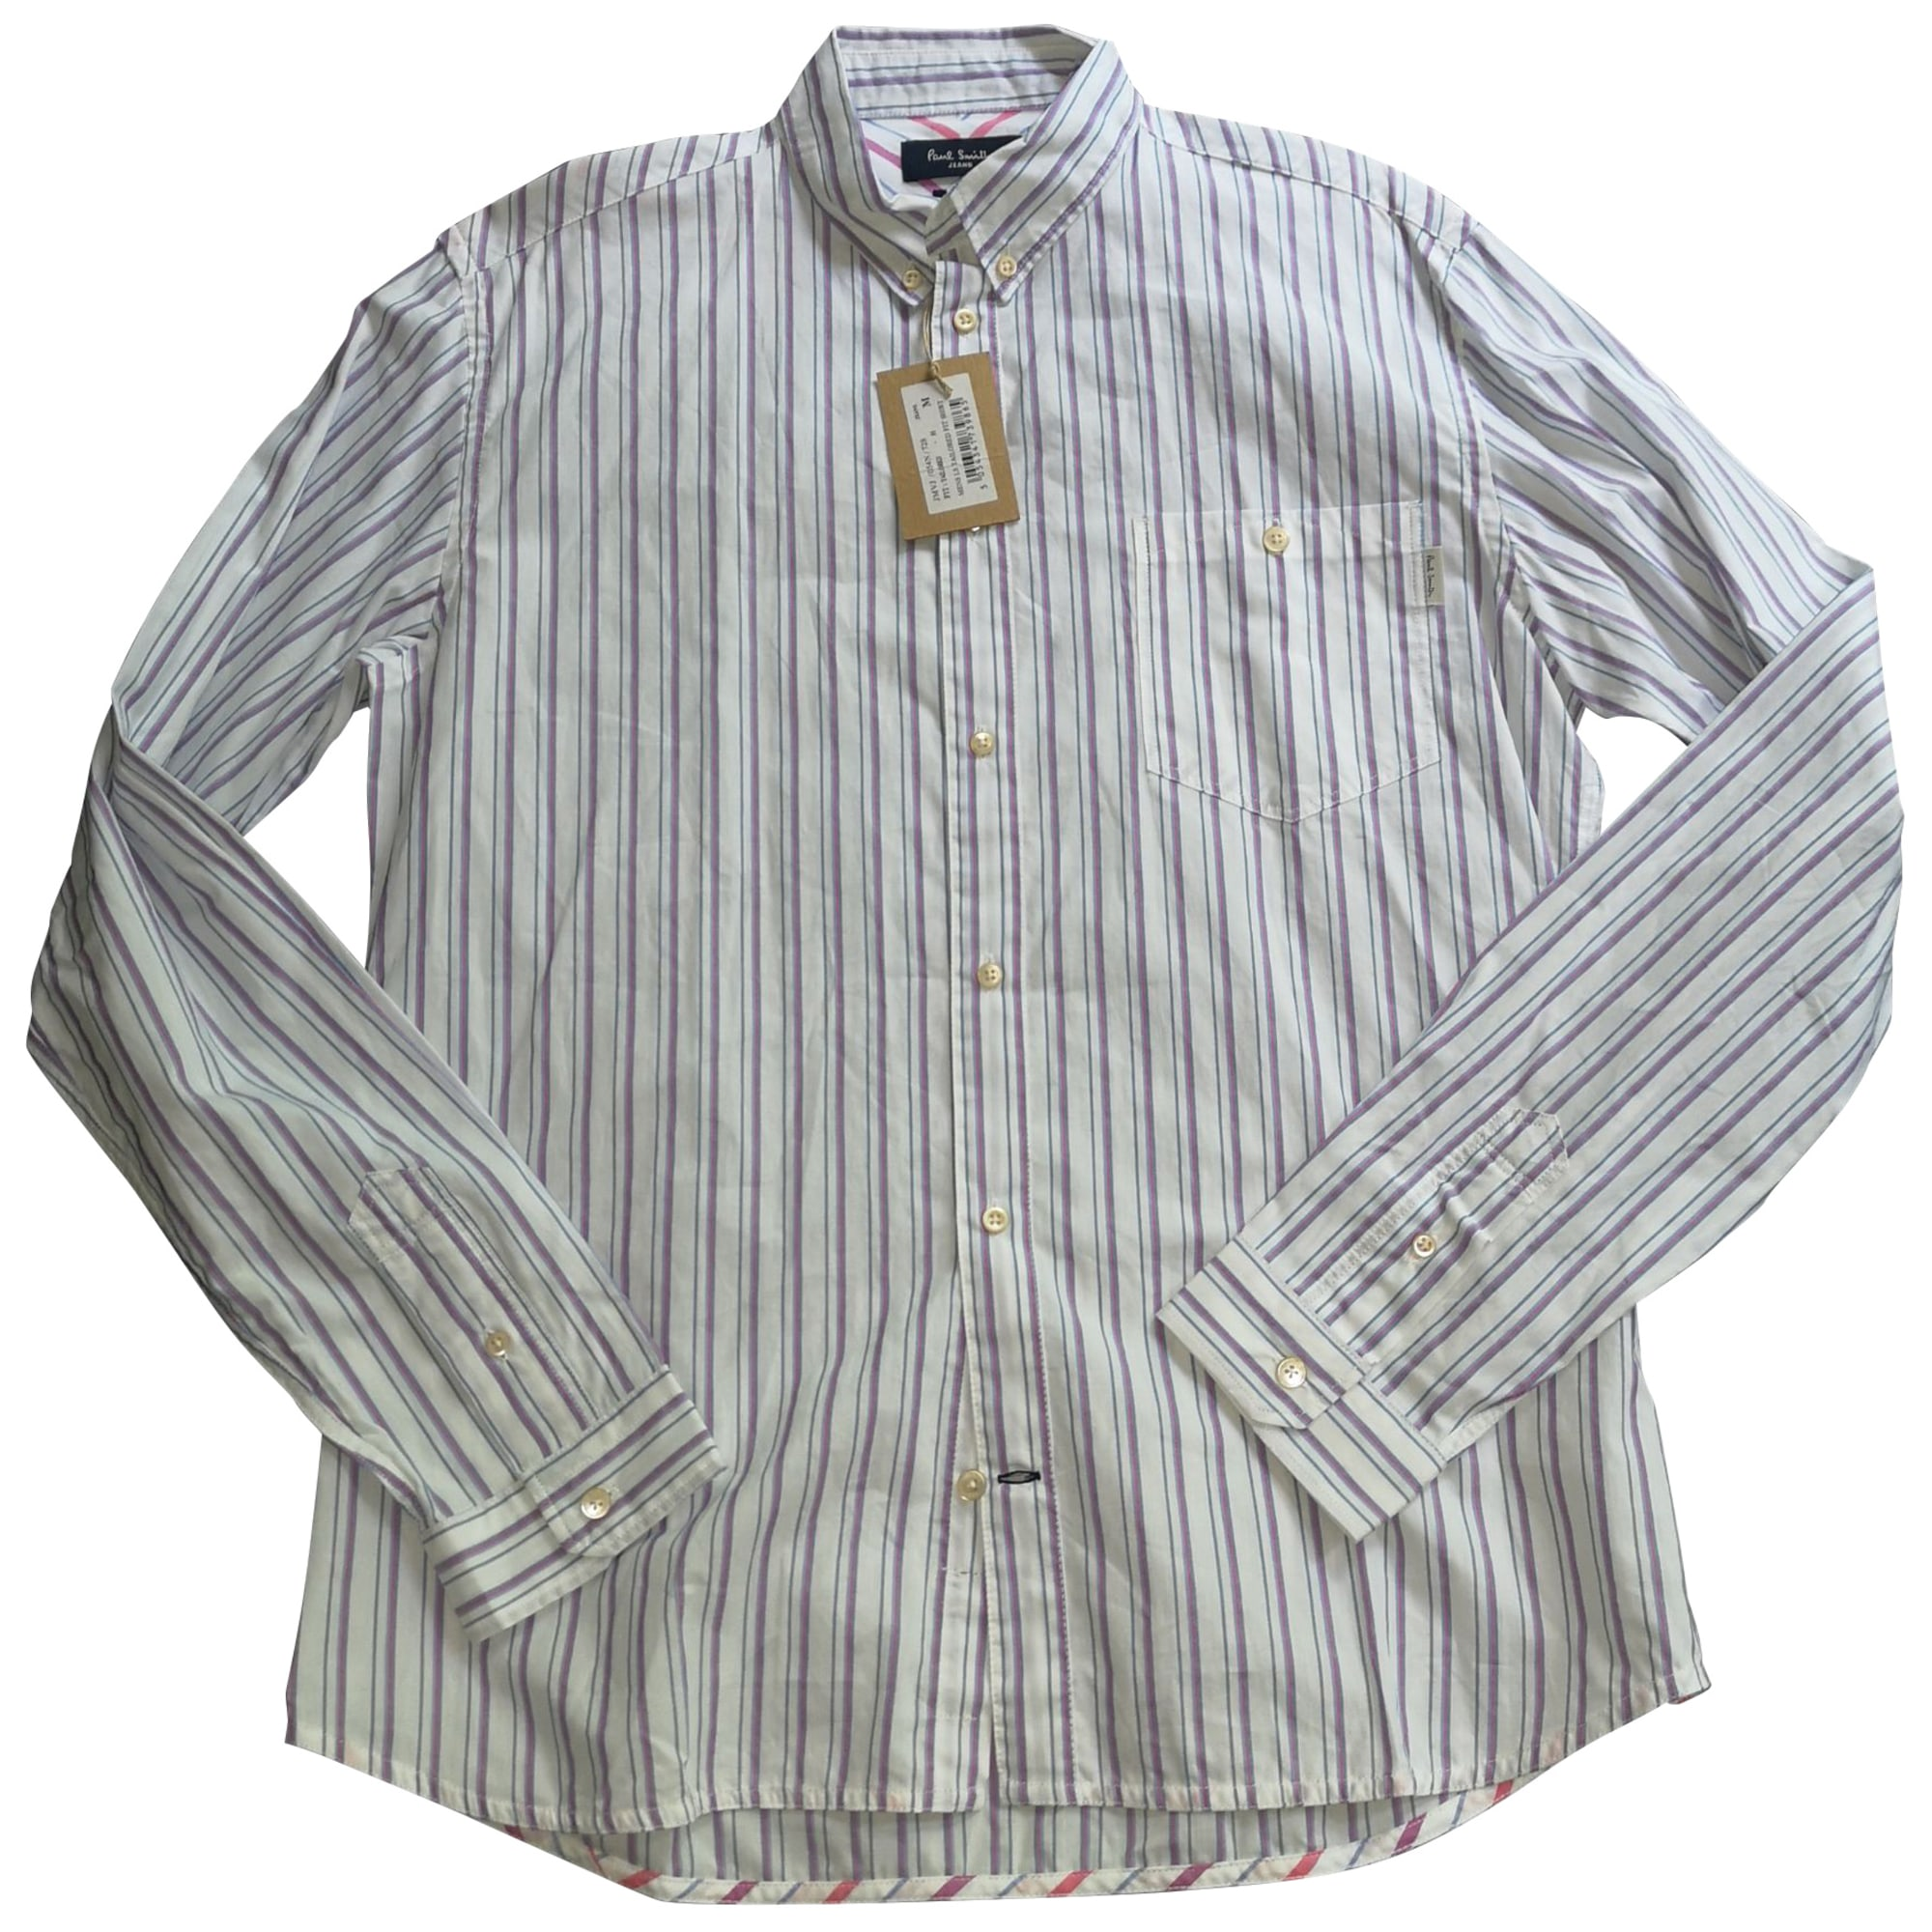 Chemise PAUL SMITH blanche à rayures